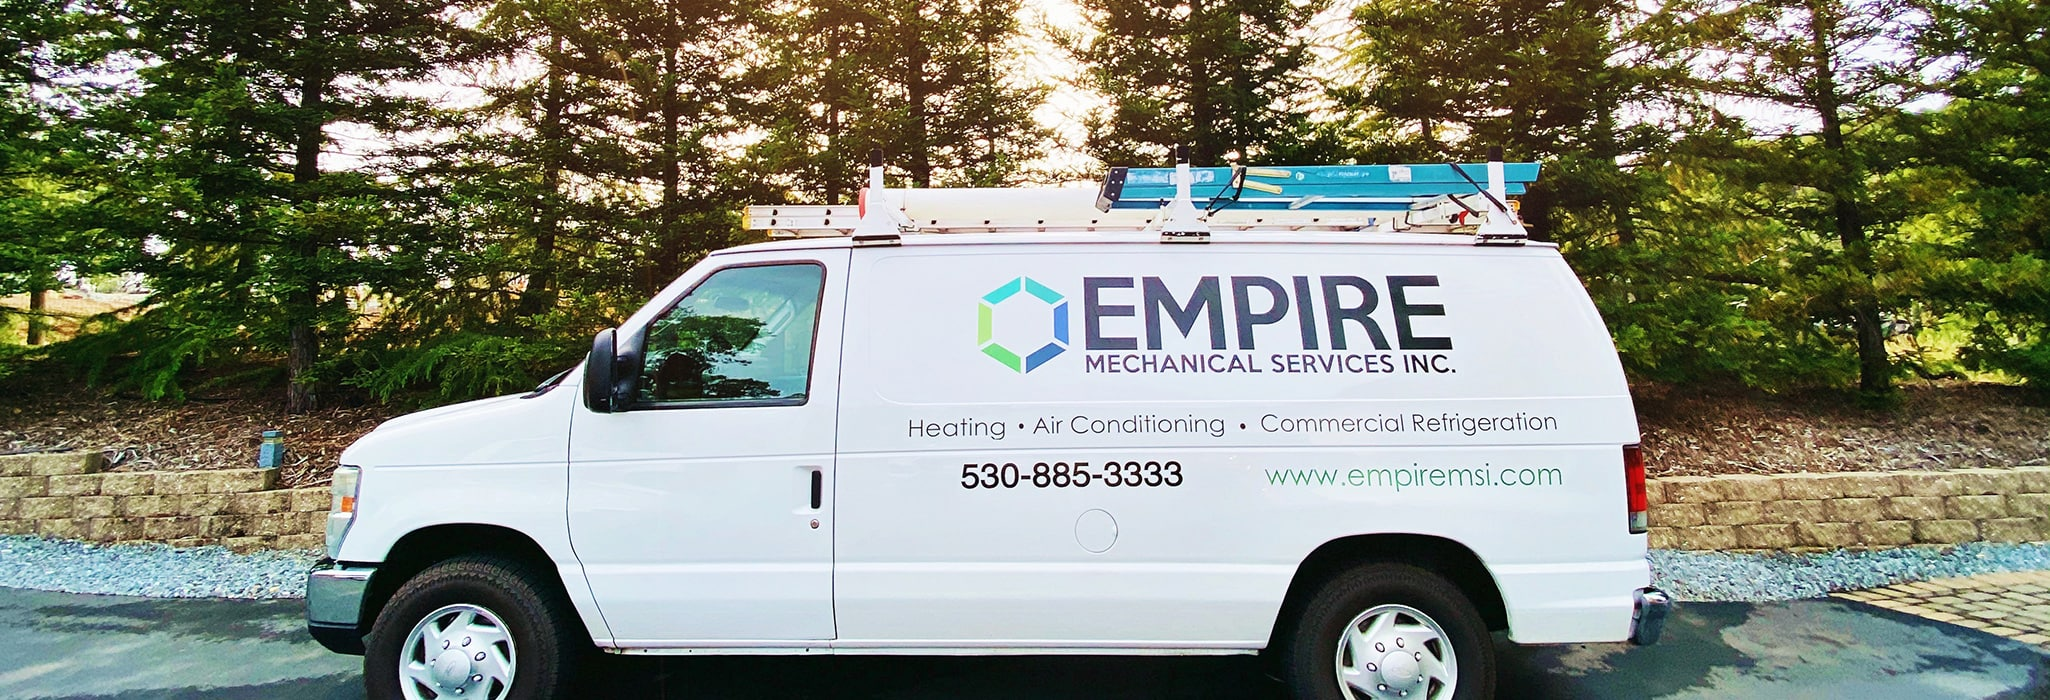 Empire service van